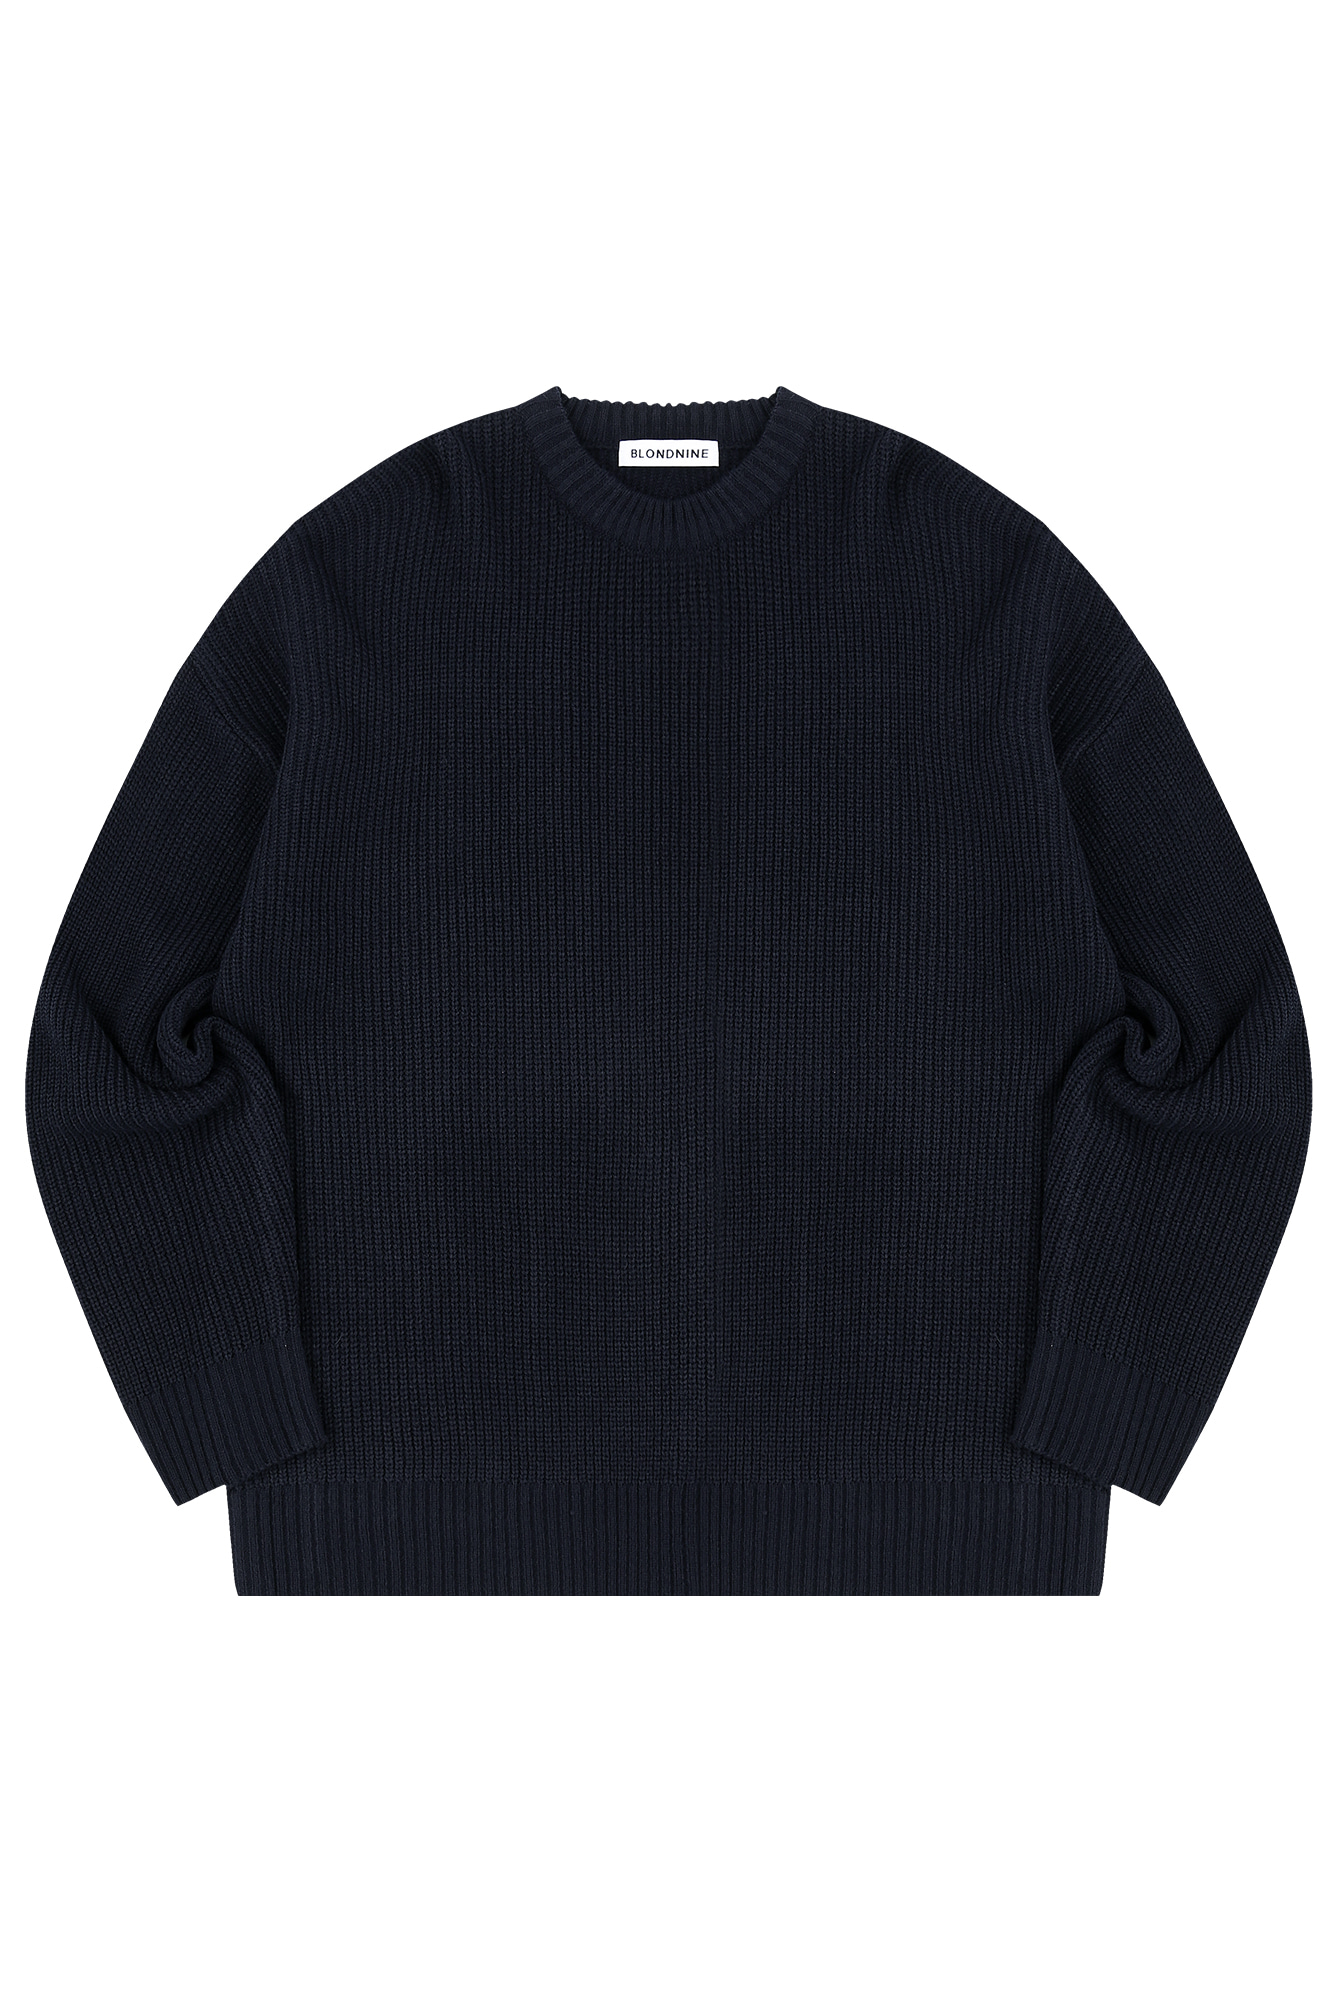 CREW NECK RIB KNIT SWEATER_NAVY